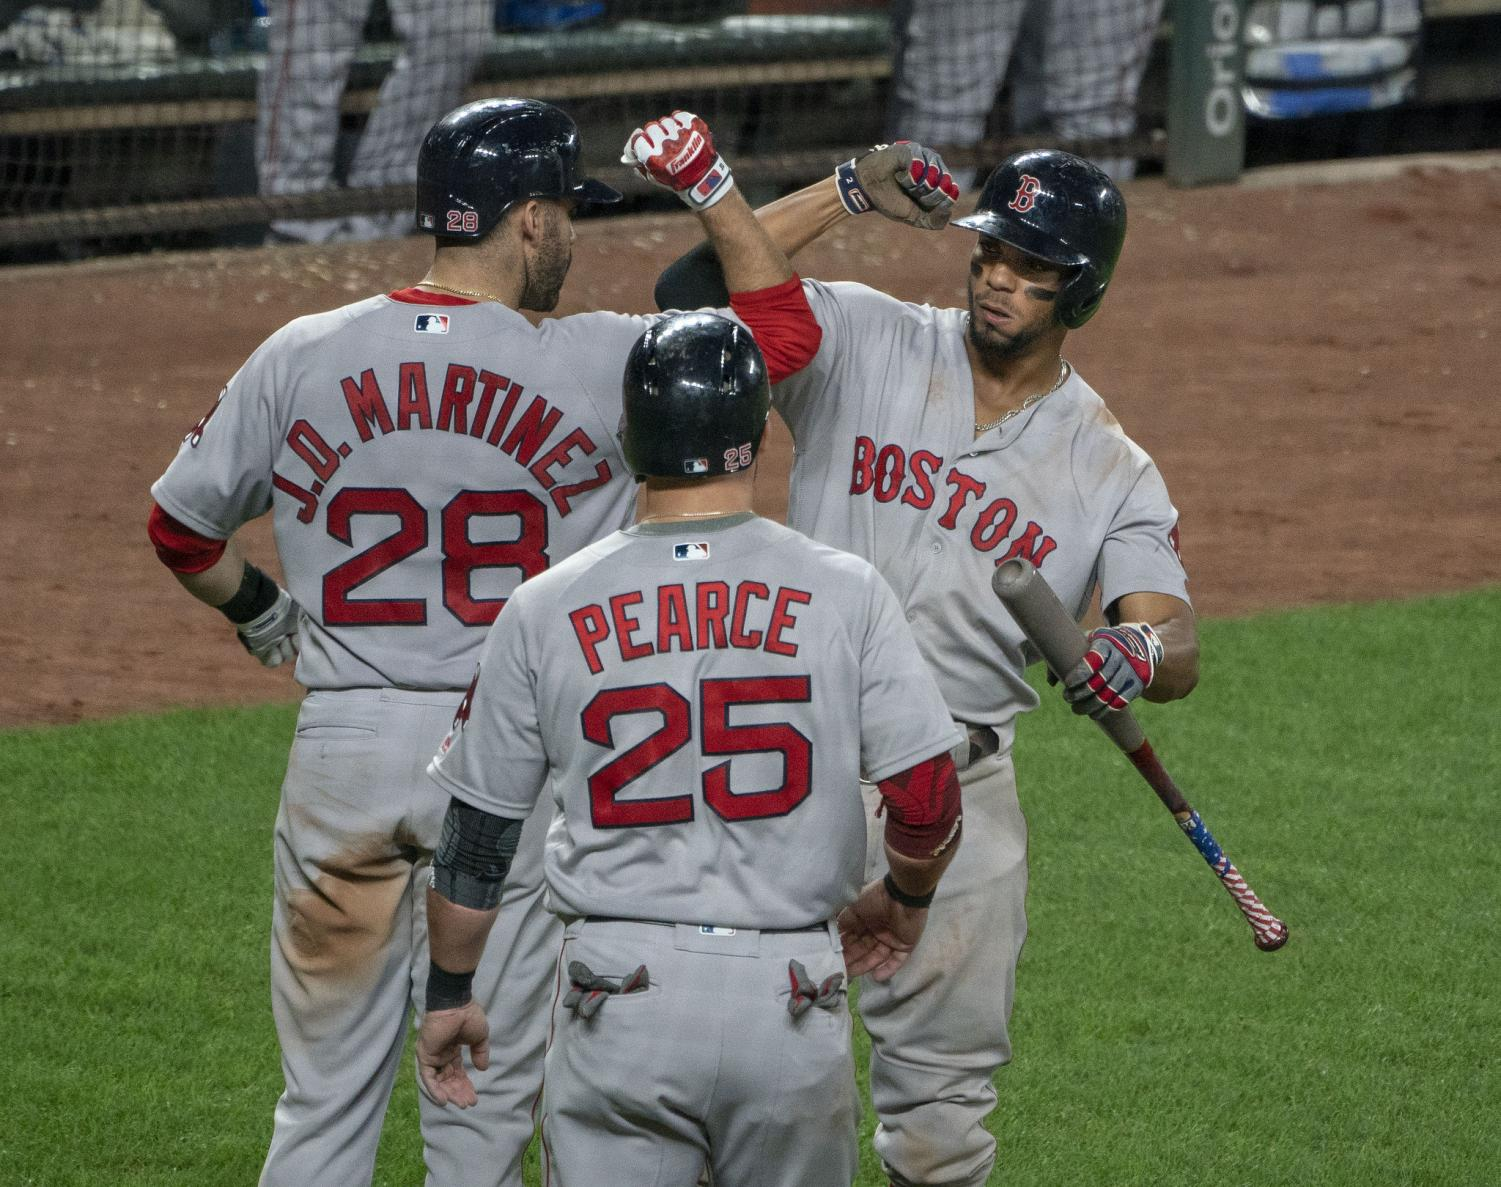 The Boston Red Sox celebrate a run during their game against the Baltimore Orioles on Aug. 11, 2018.